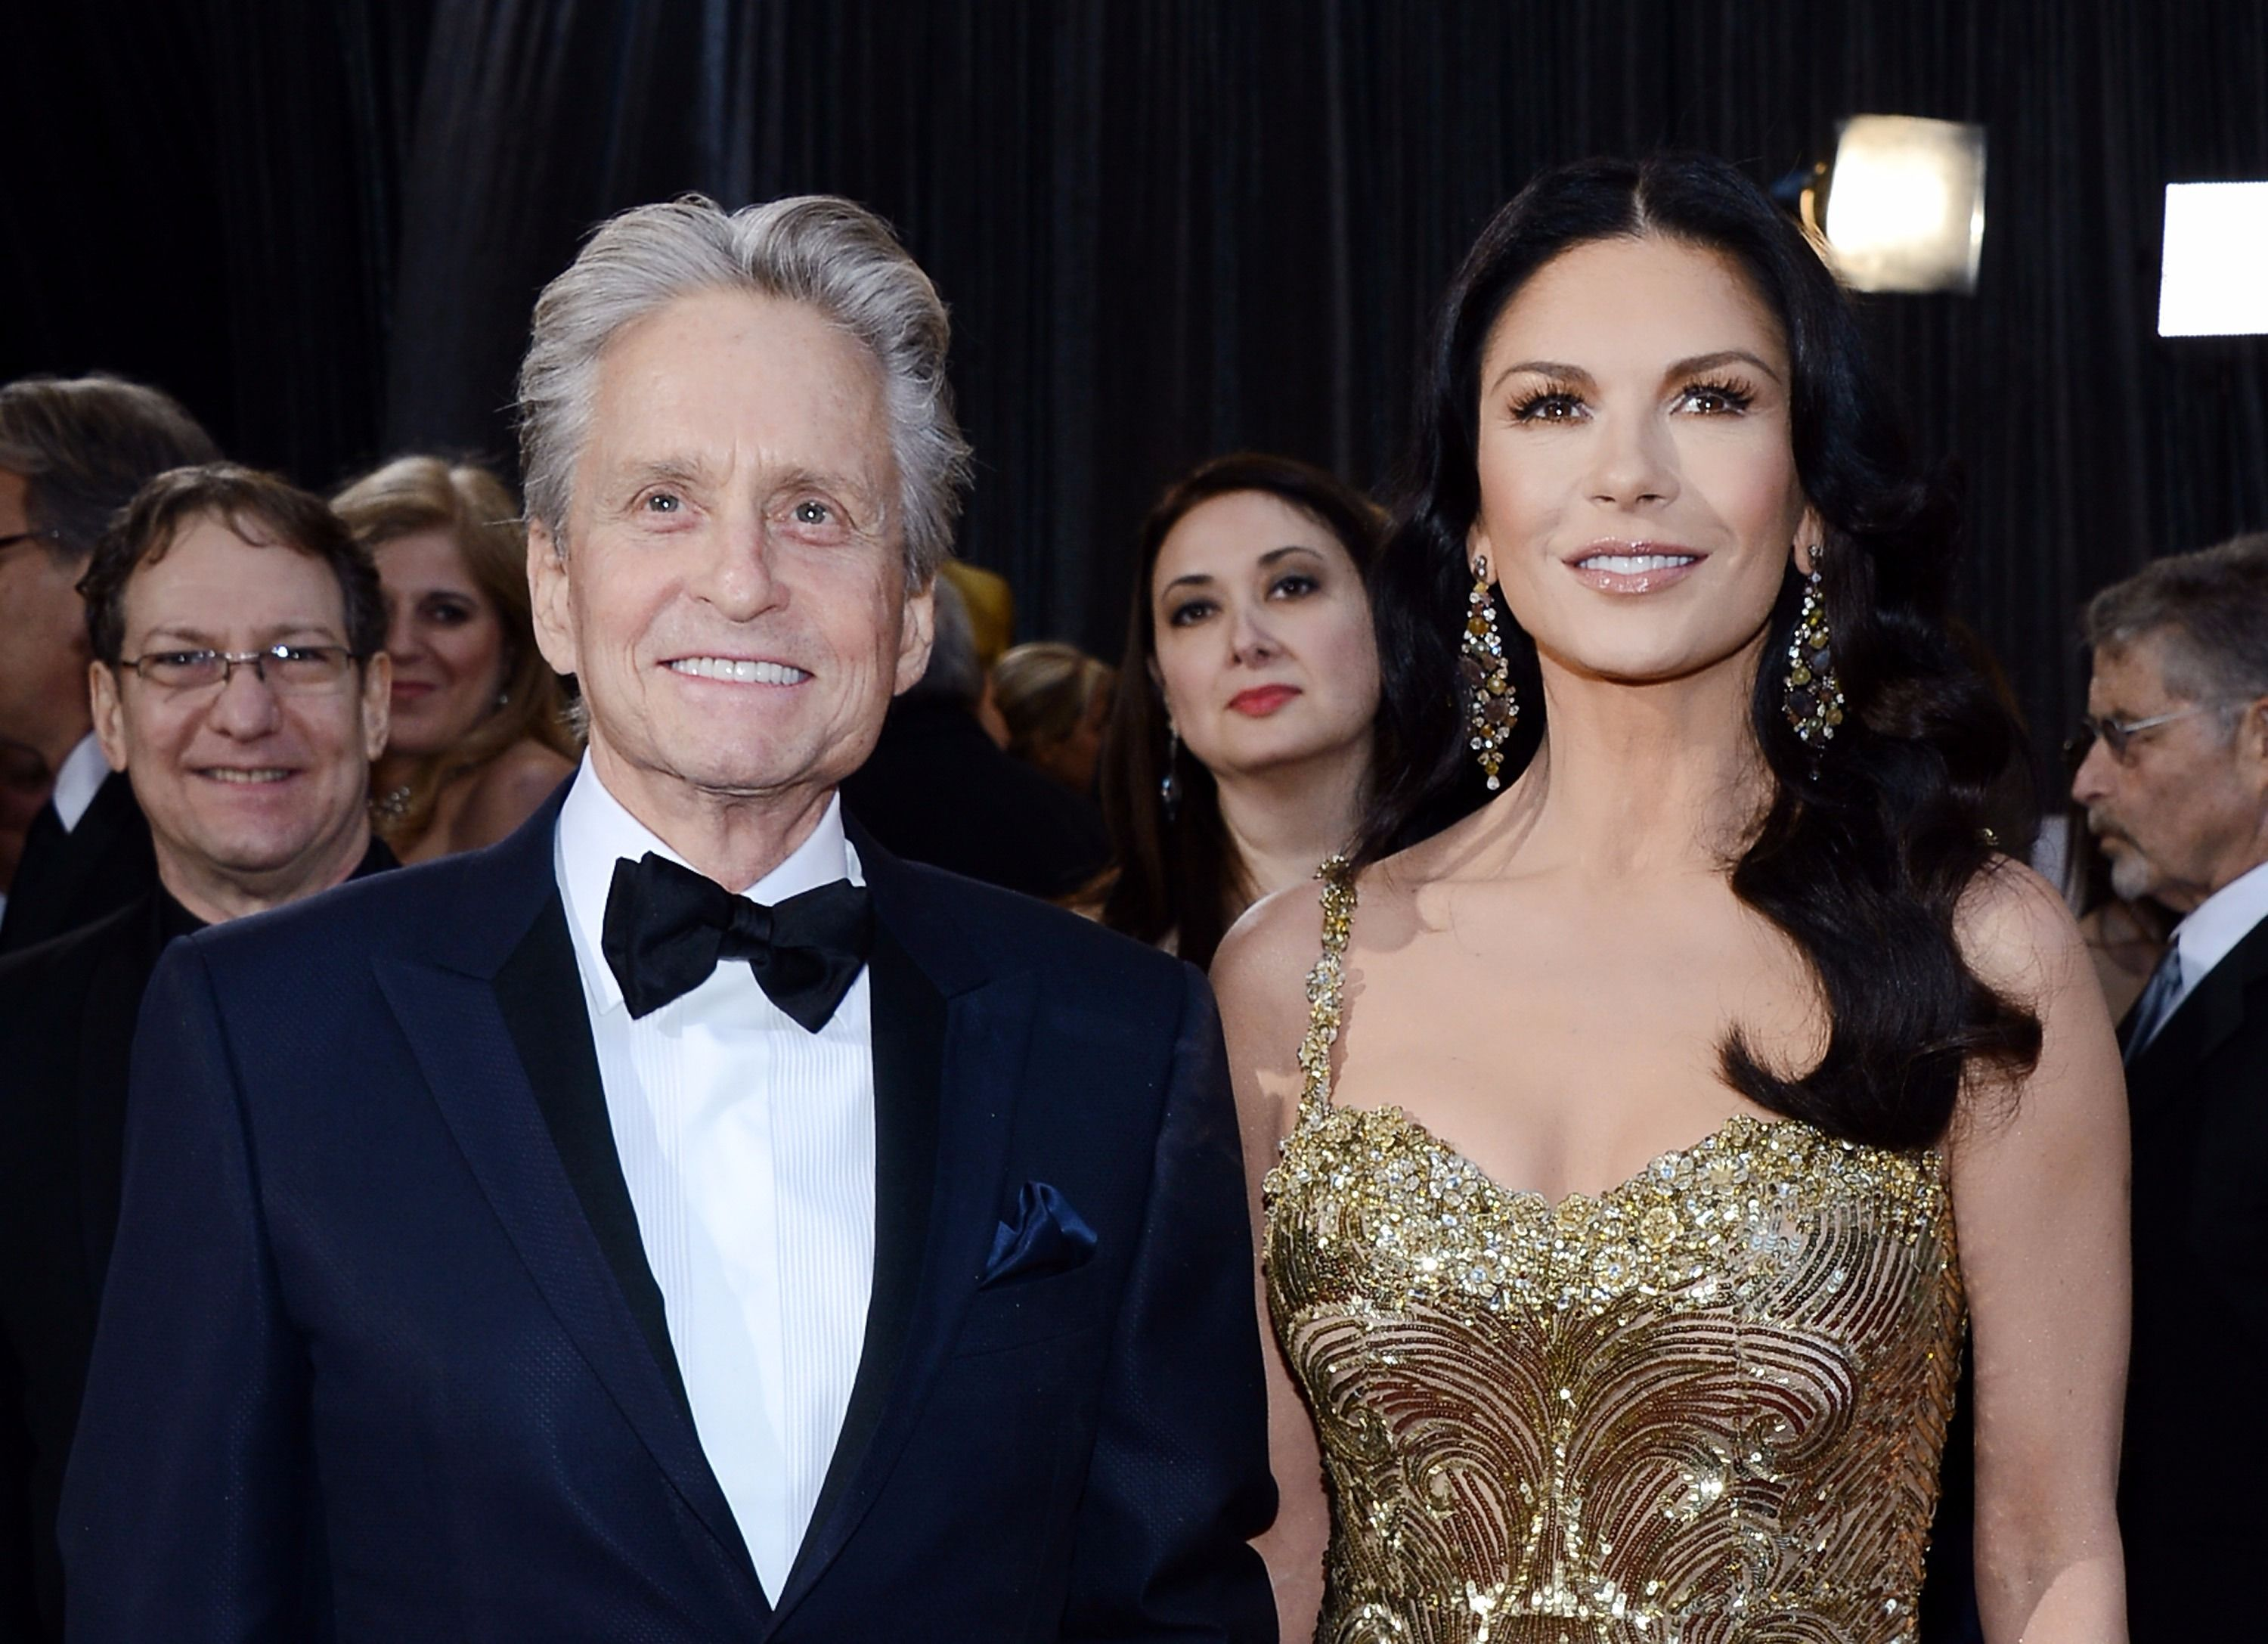 Michael Douglas and Catherine Zeta-Jones live in an endless party